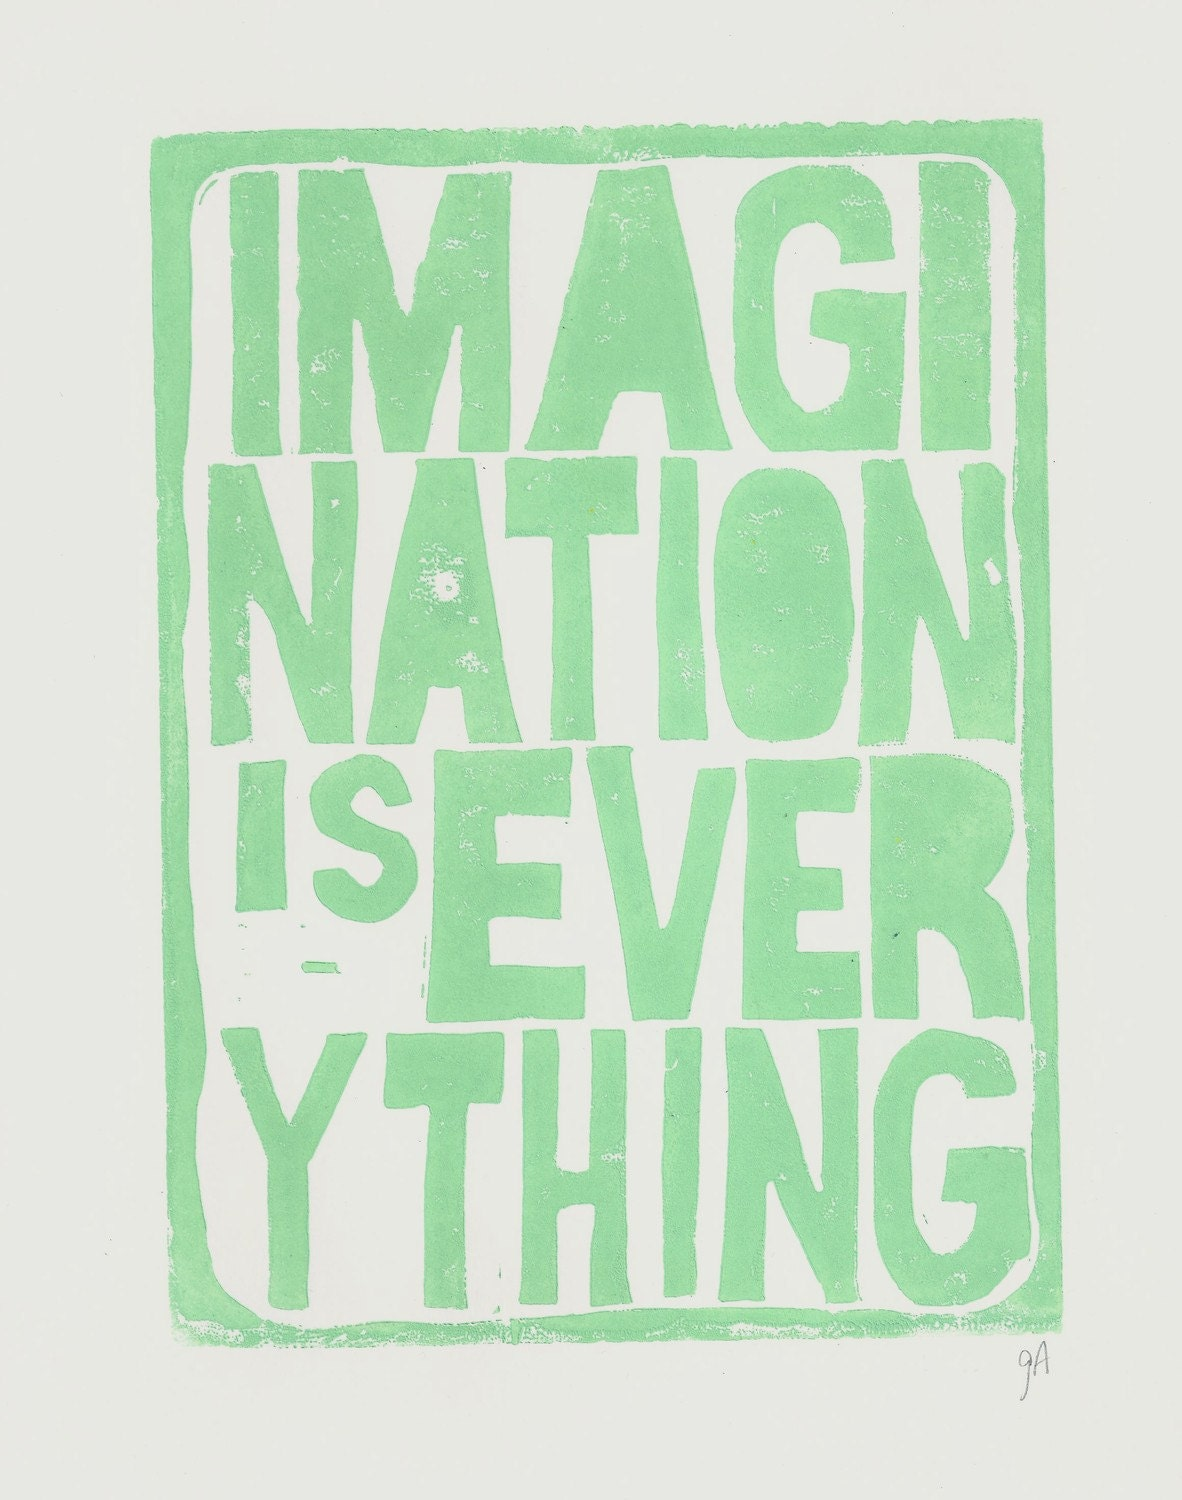 PRINT - Imagination is everything LINOCUT sea foam green - poster 8x10